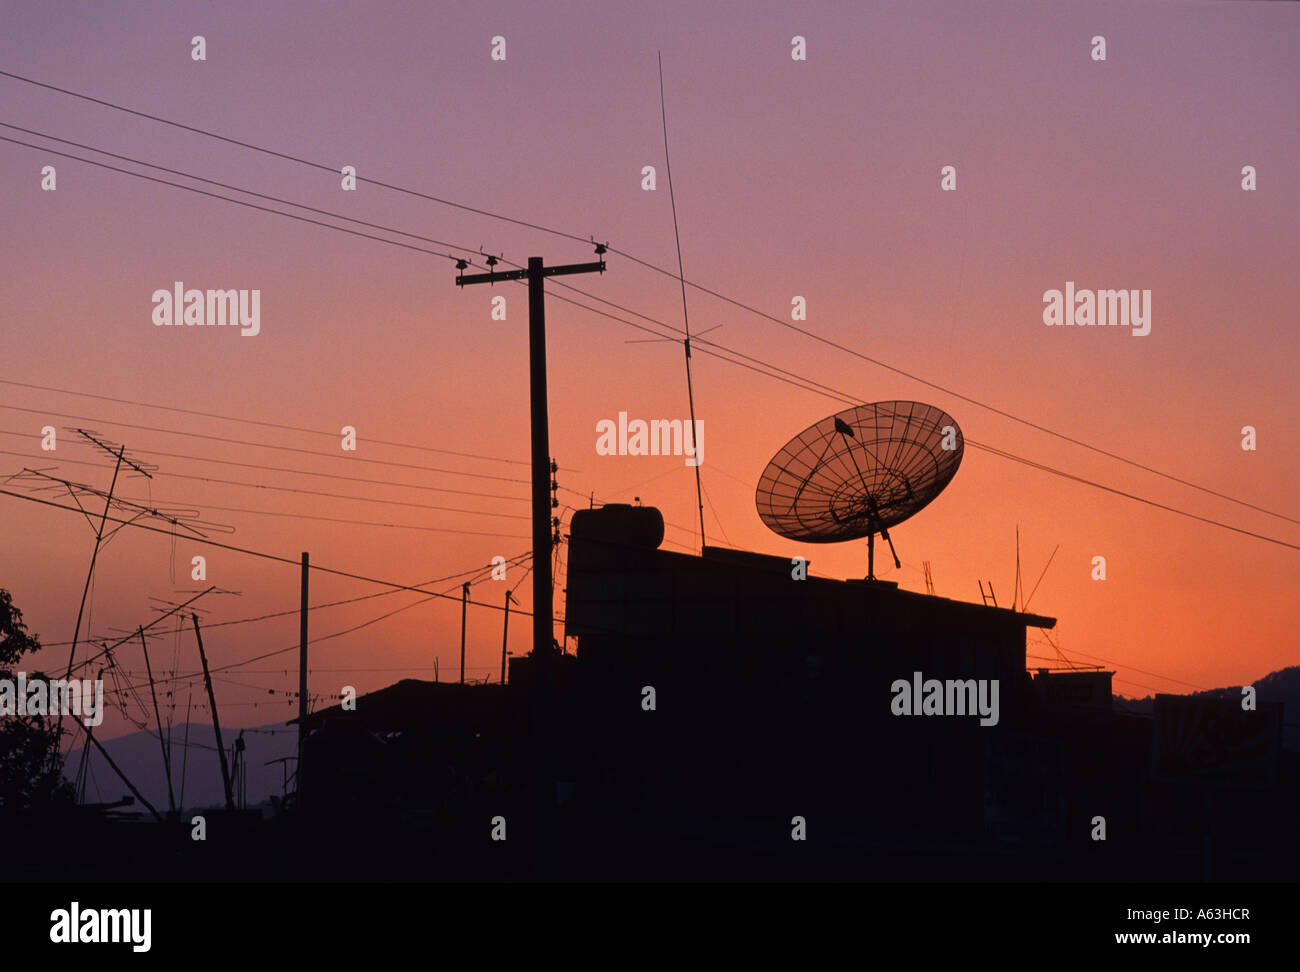 tv satellite dish, tv aerials, telephone wires and telegraph pole at  sunset, near uruapan, mexico